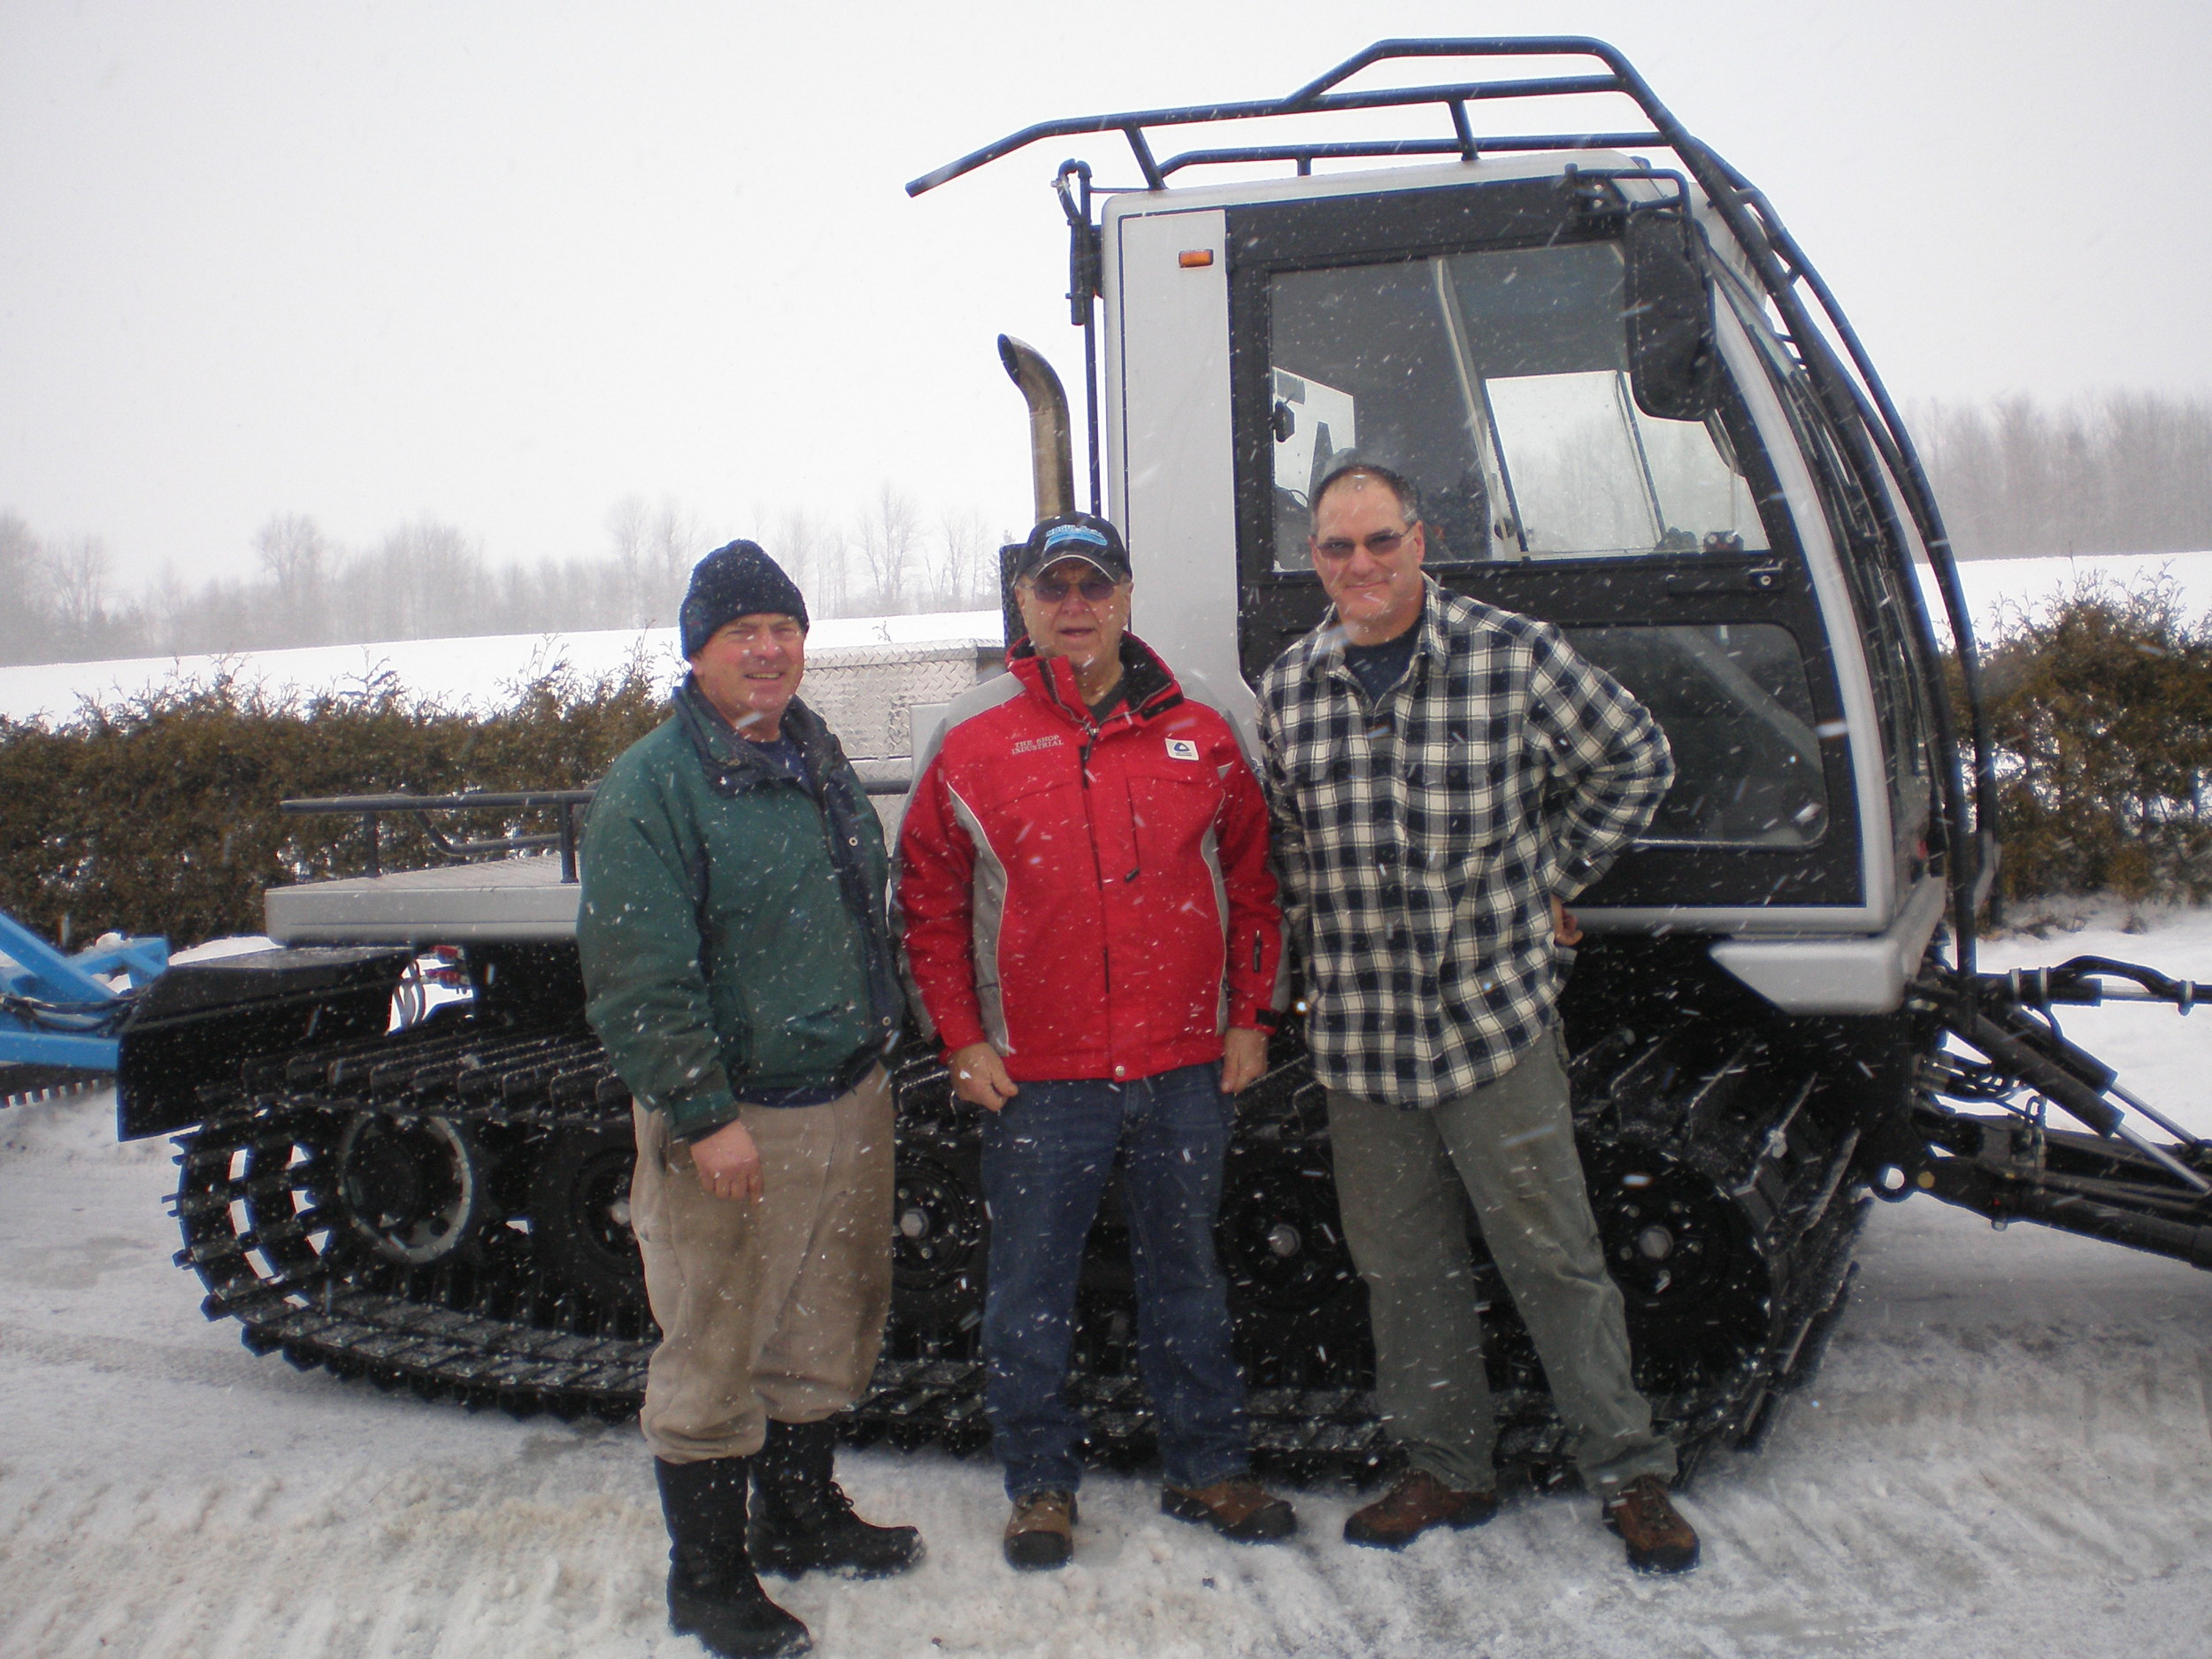 Groomer Operator Wayne Dandy, Mike Heino - The Shop Industrial, Groomer Operator Doug Champagne with CRSC's new 2013 Husky.